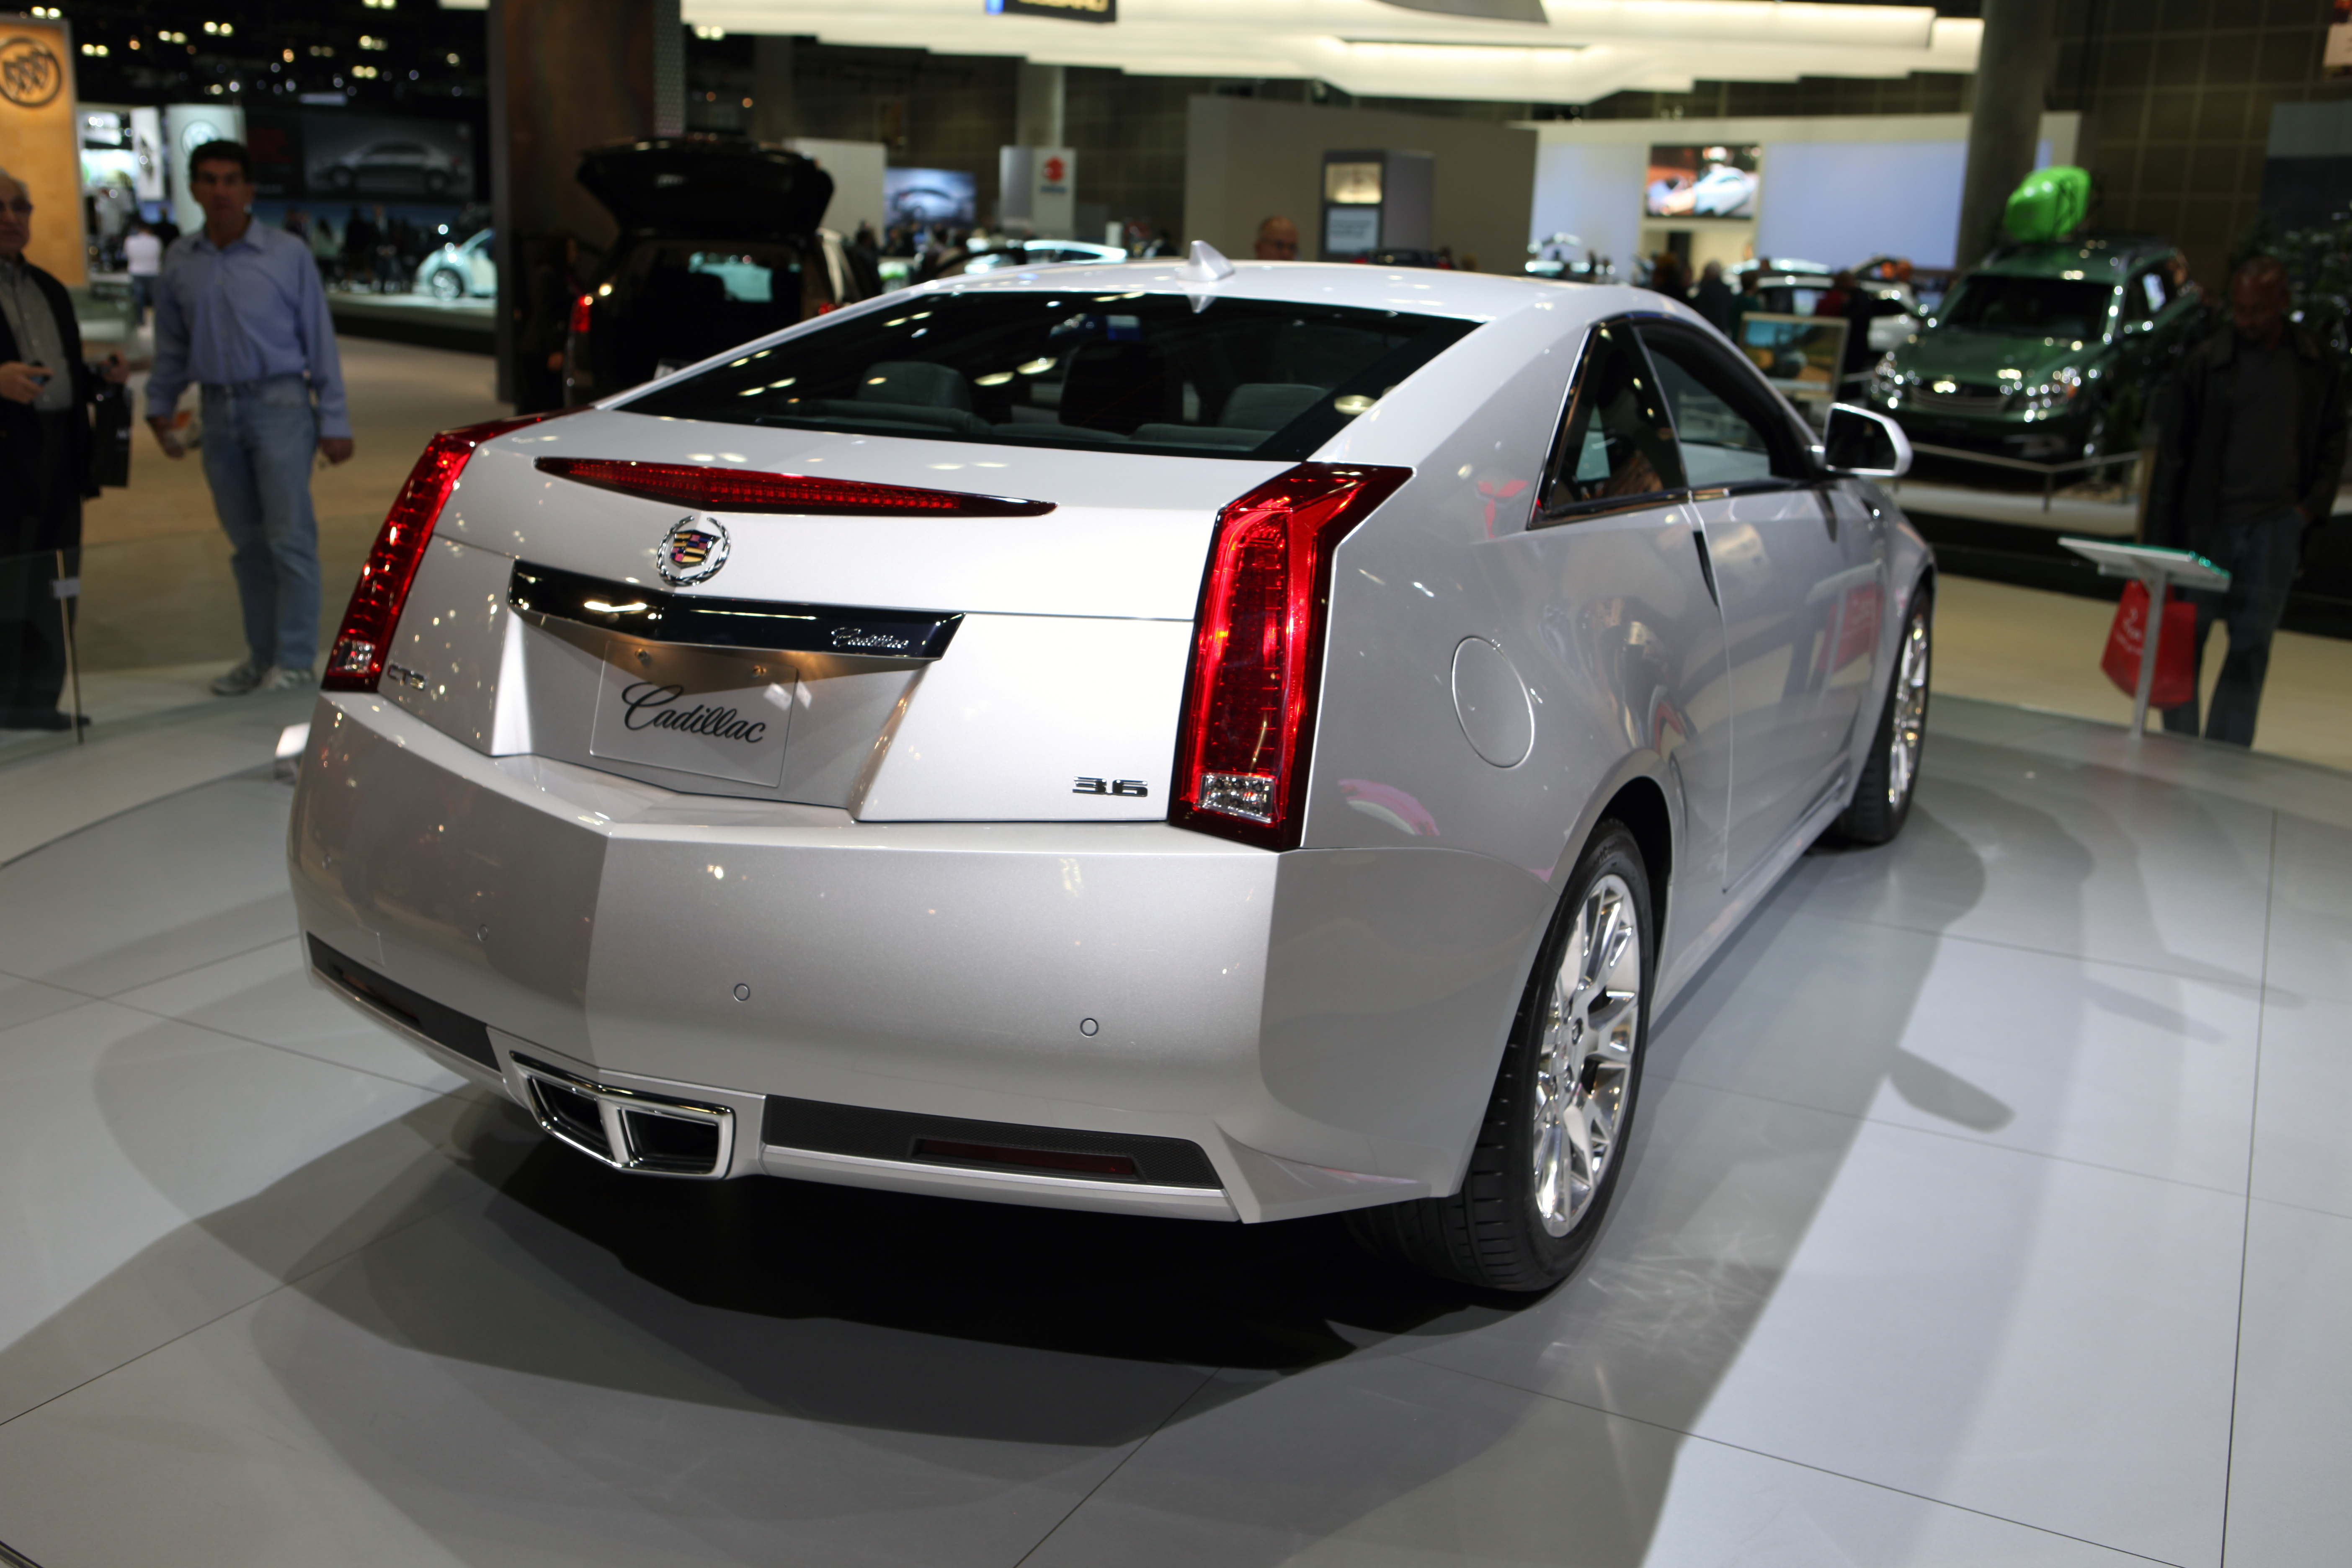 media archive us list sedan en losangeles and pages autoshows vsport driver named nov detail cadillac cts car news content best